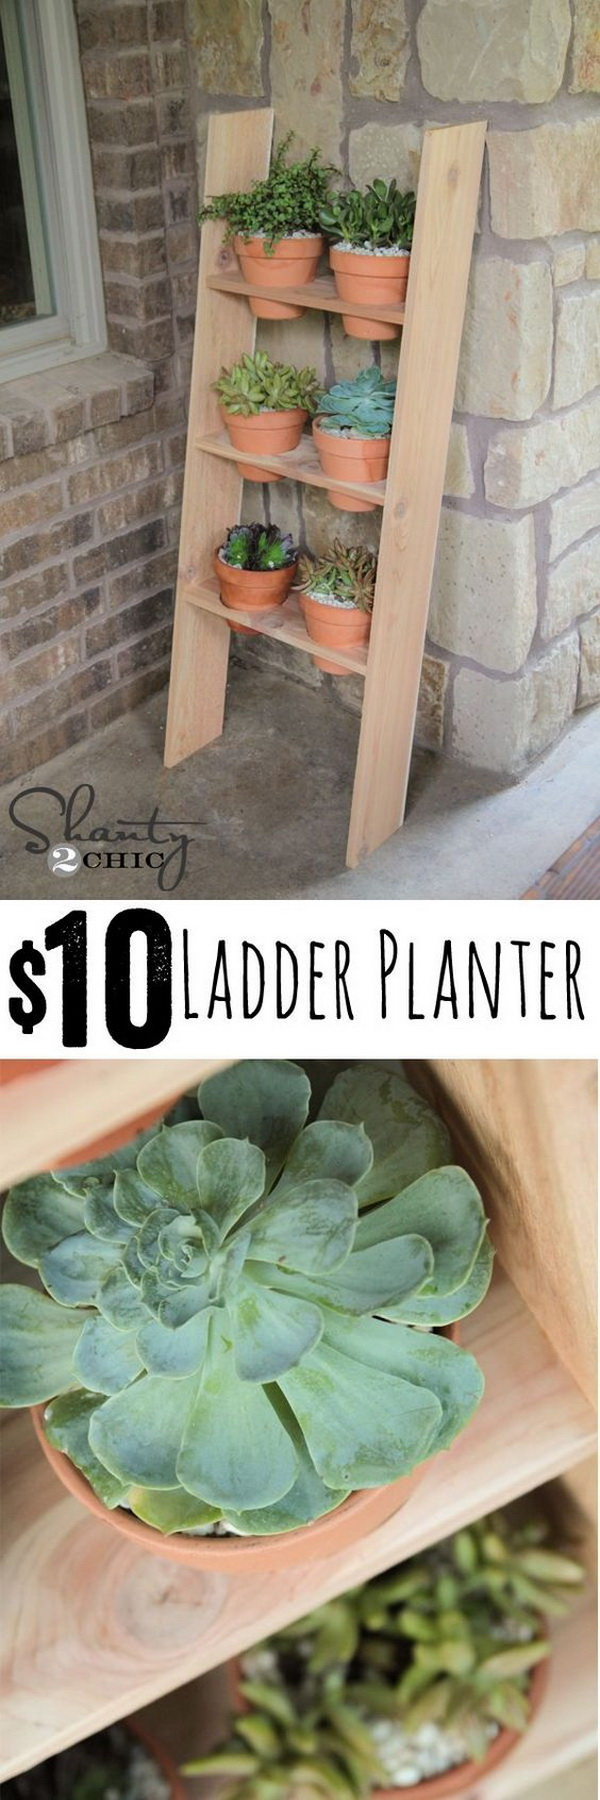 $10 Ladder Planter. A quick and easy DIY planter project that anyone can make.